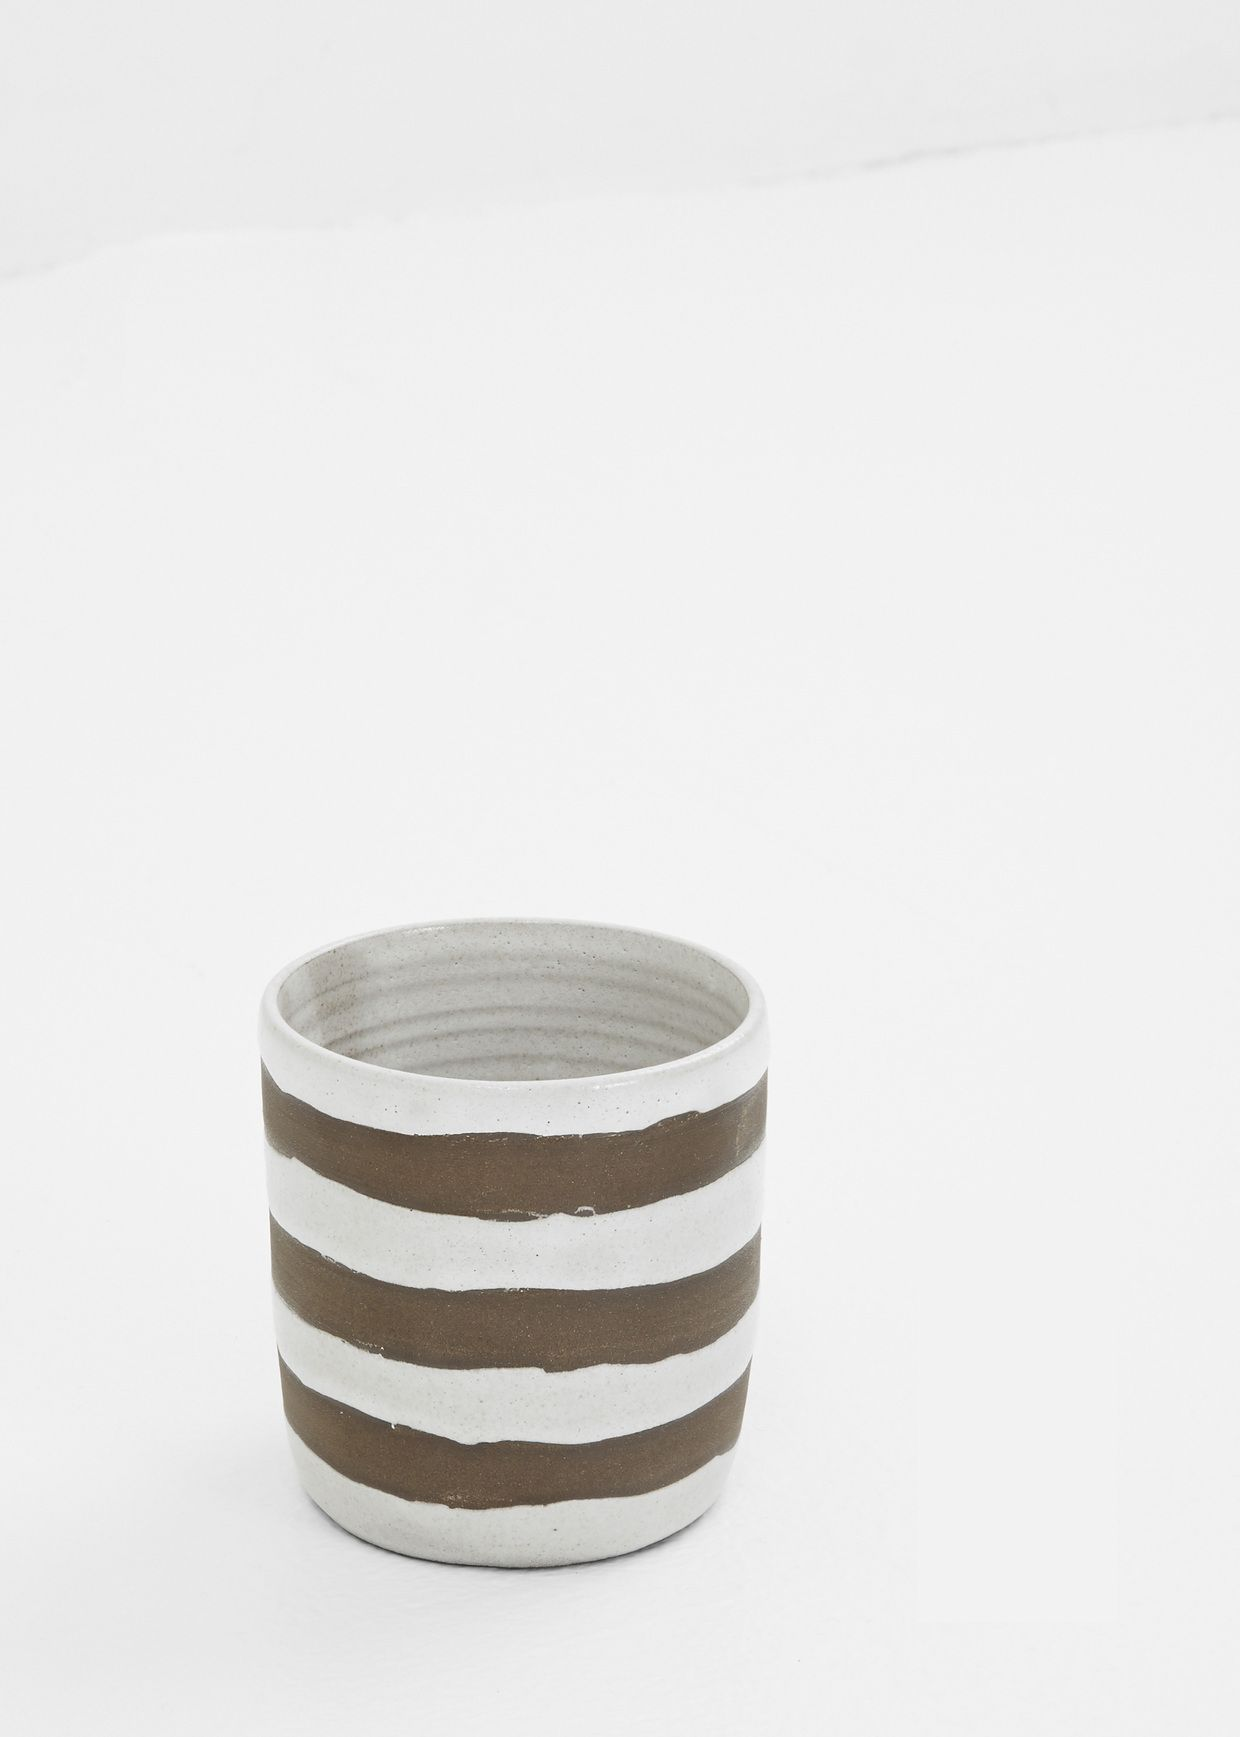 dark brown clay with white resist and white glaze white resist